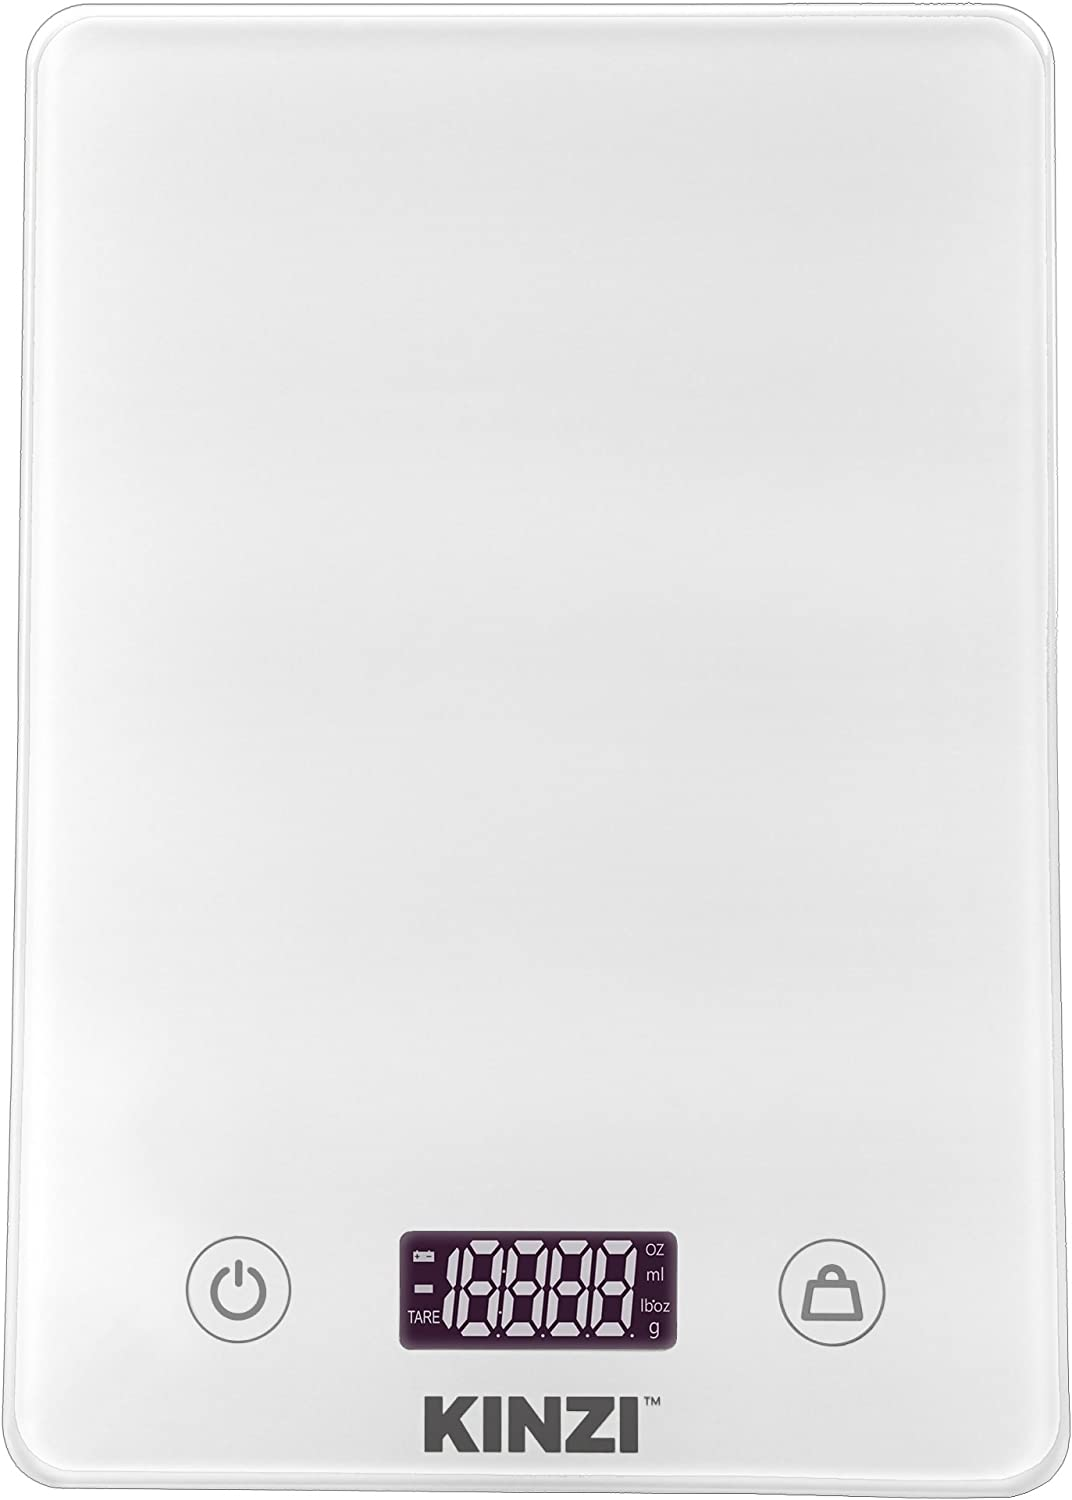 Kinzi Digital Touch Kitchen Scale (12 lbs Edition), Tempered Glass in Clean White